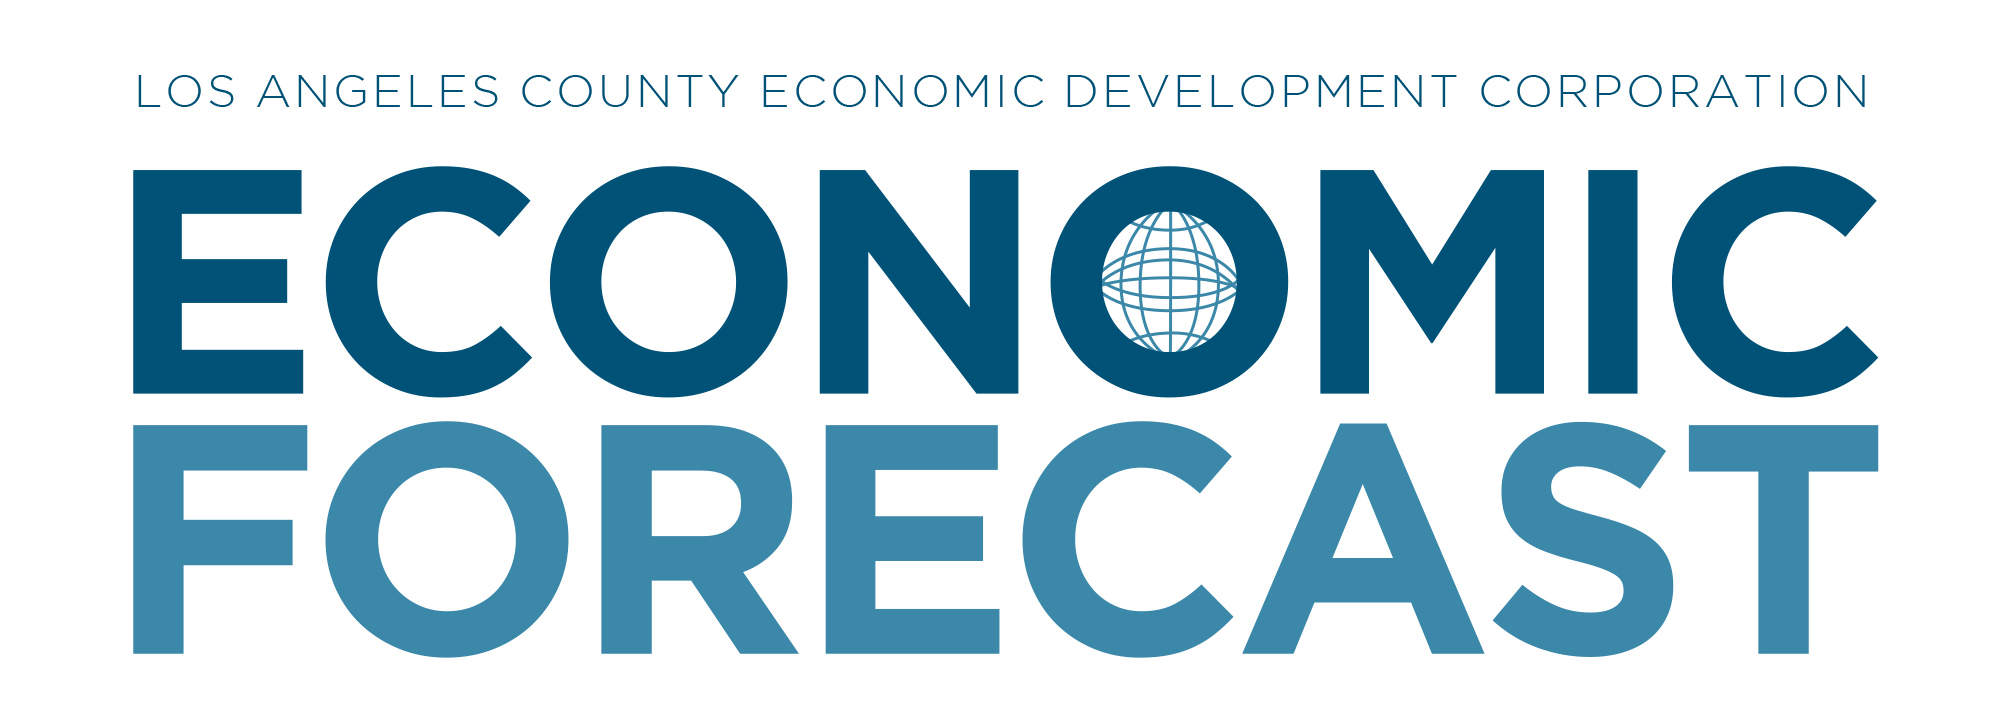 LAEDC Feburary Economic Forecast